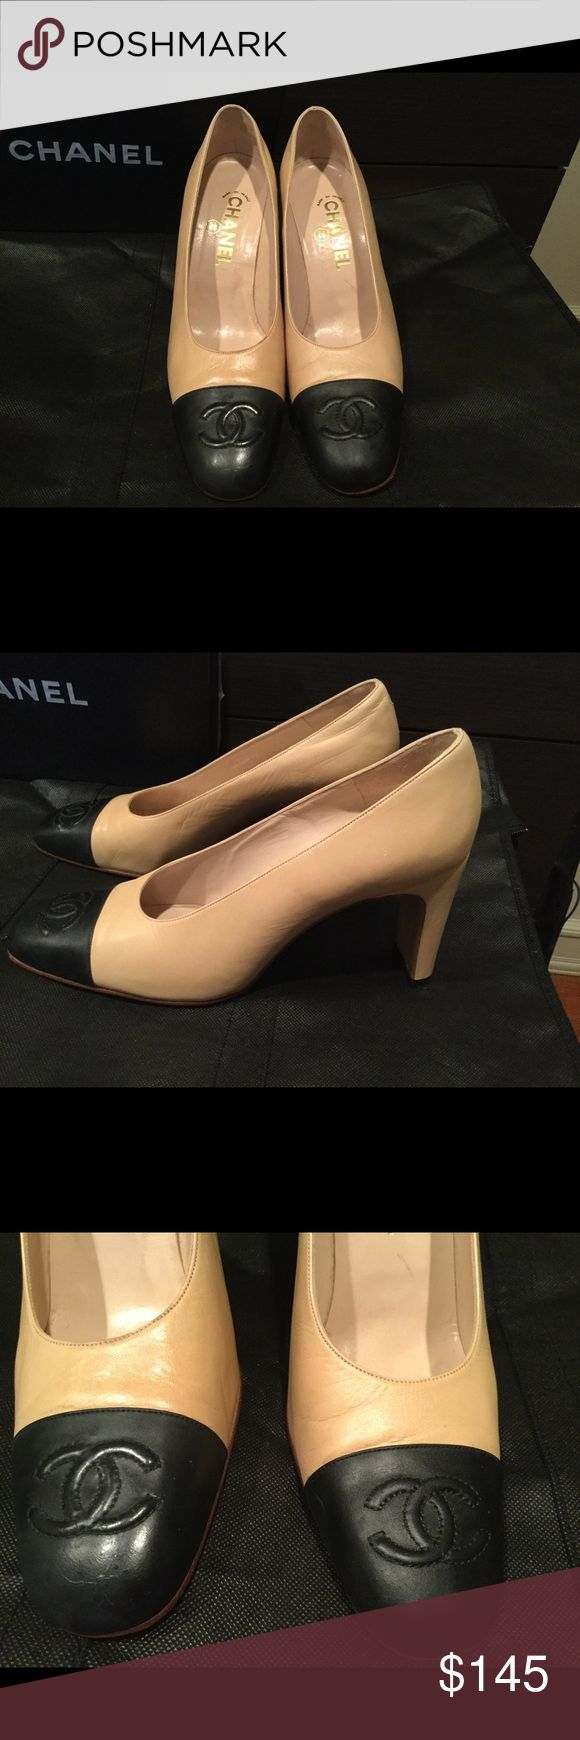 AUTHENTIC CHANEL CAP TOE / TAN & BLACK Up for sale is a beautiful pair of Chanel pumps in size euro 39 1/2 and US size 9 1/2. They have been used, but great condition. Some wrinkle on the leather please review the picture carefully. Box is not included. Only wore 3 times after purchased. Any questions please ask, thanks for looking! CHANEL Shoes Heels